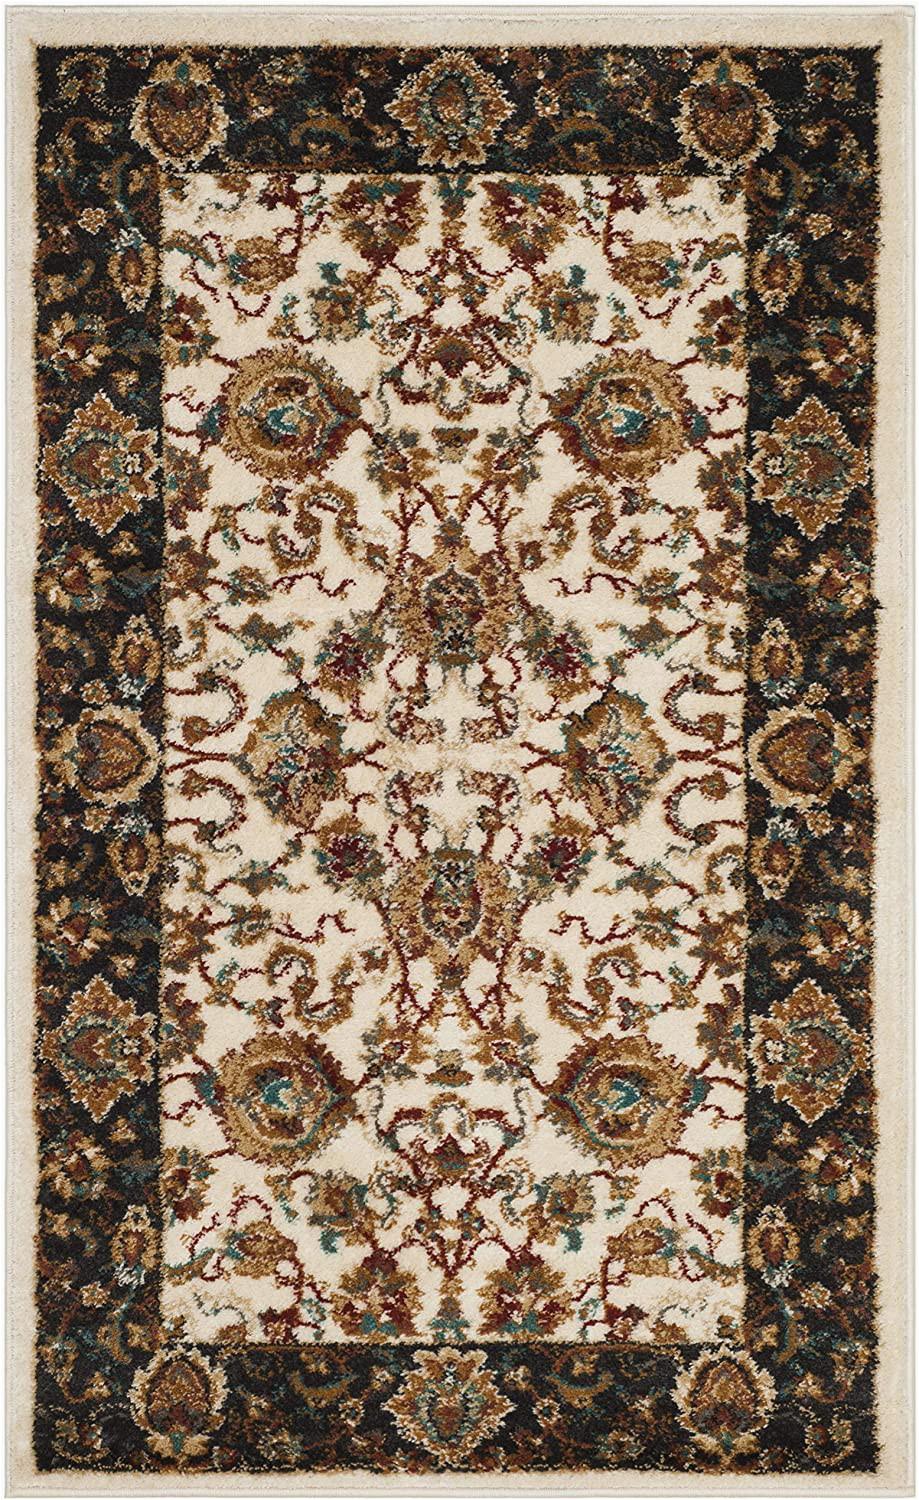 Area Rug Set Of 3 Safavieh Summit Collection Smt297p Ivory and Dark Grey area Rug 3 X 5